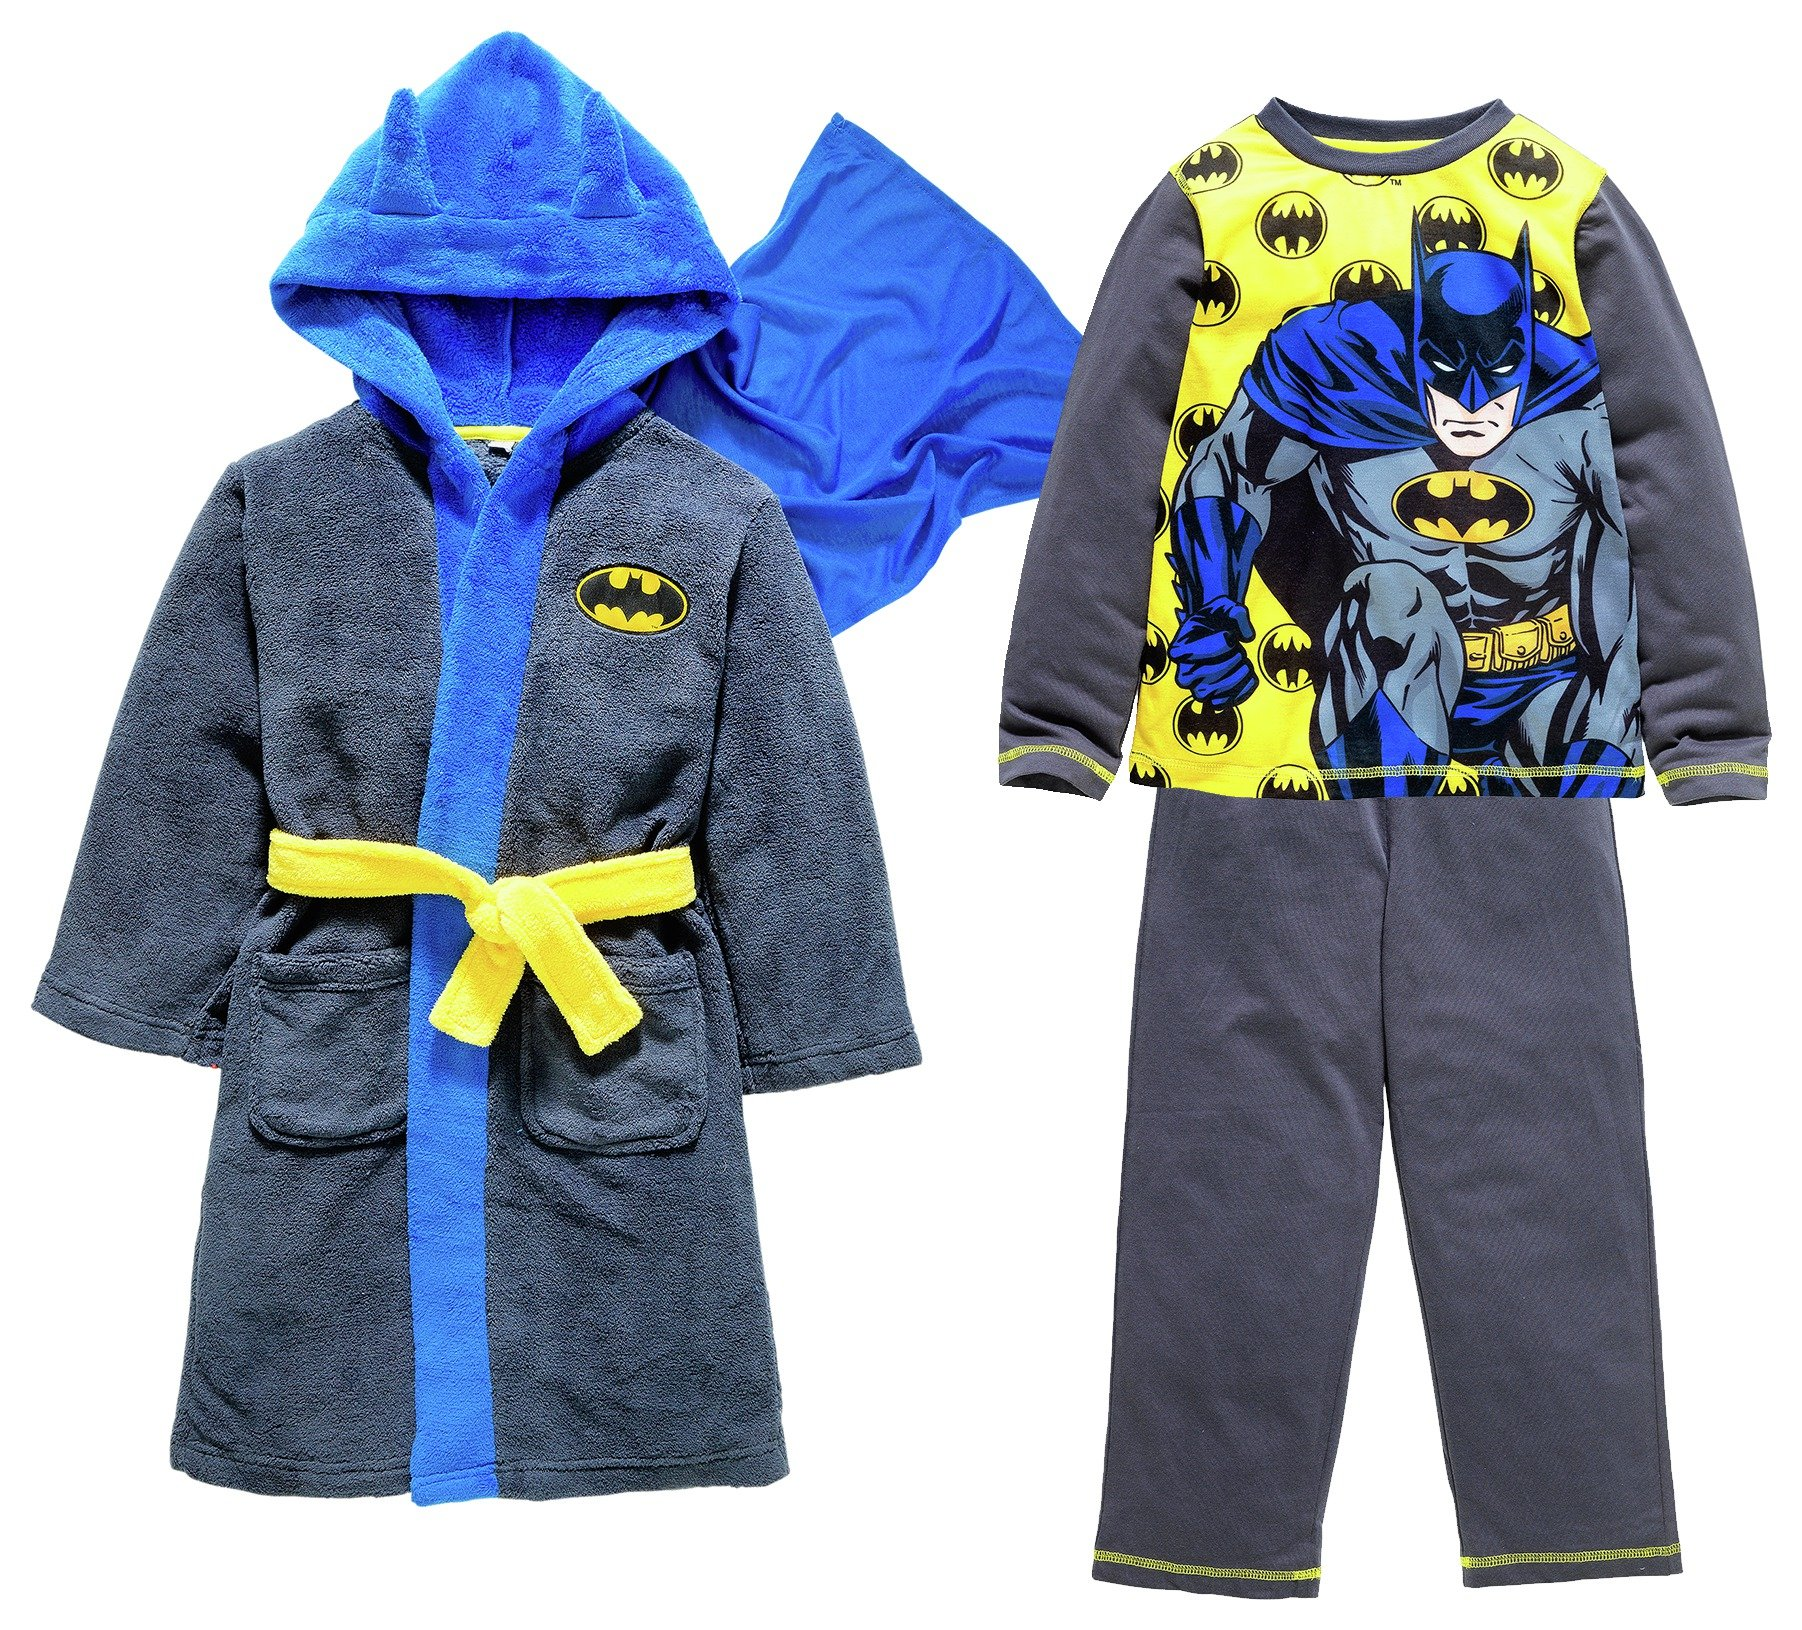 Image of Batman - Robe and - Pyjamas - 7-8 Years